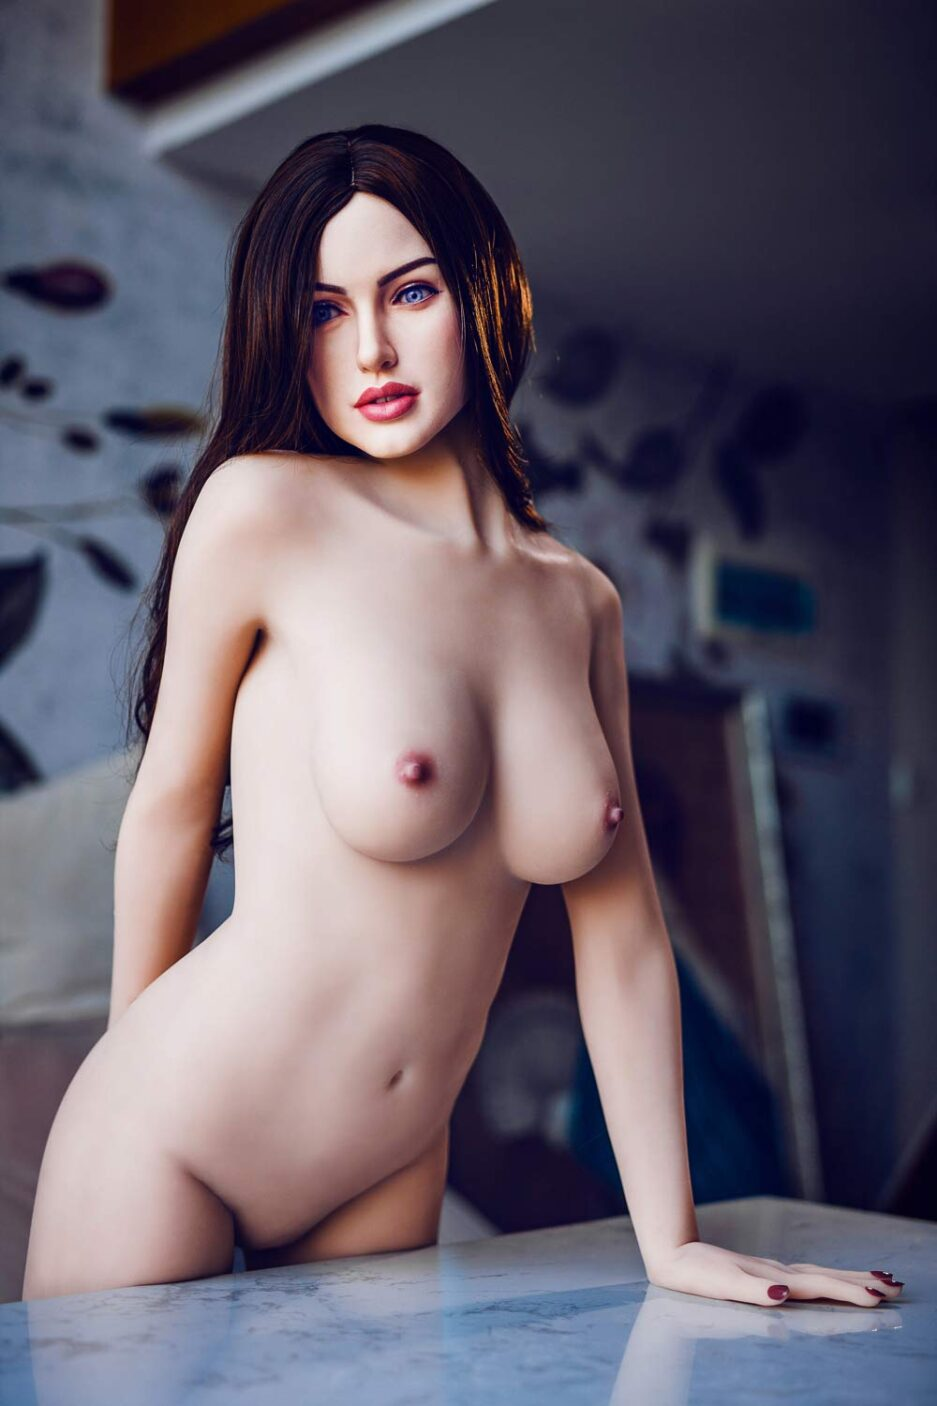 Silicone sex doll with breasts exposed